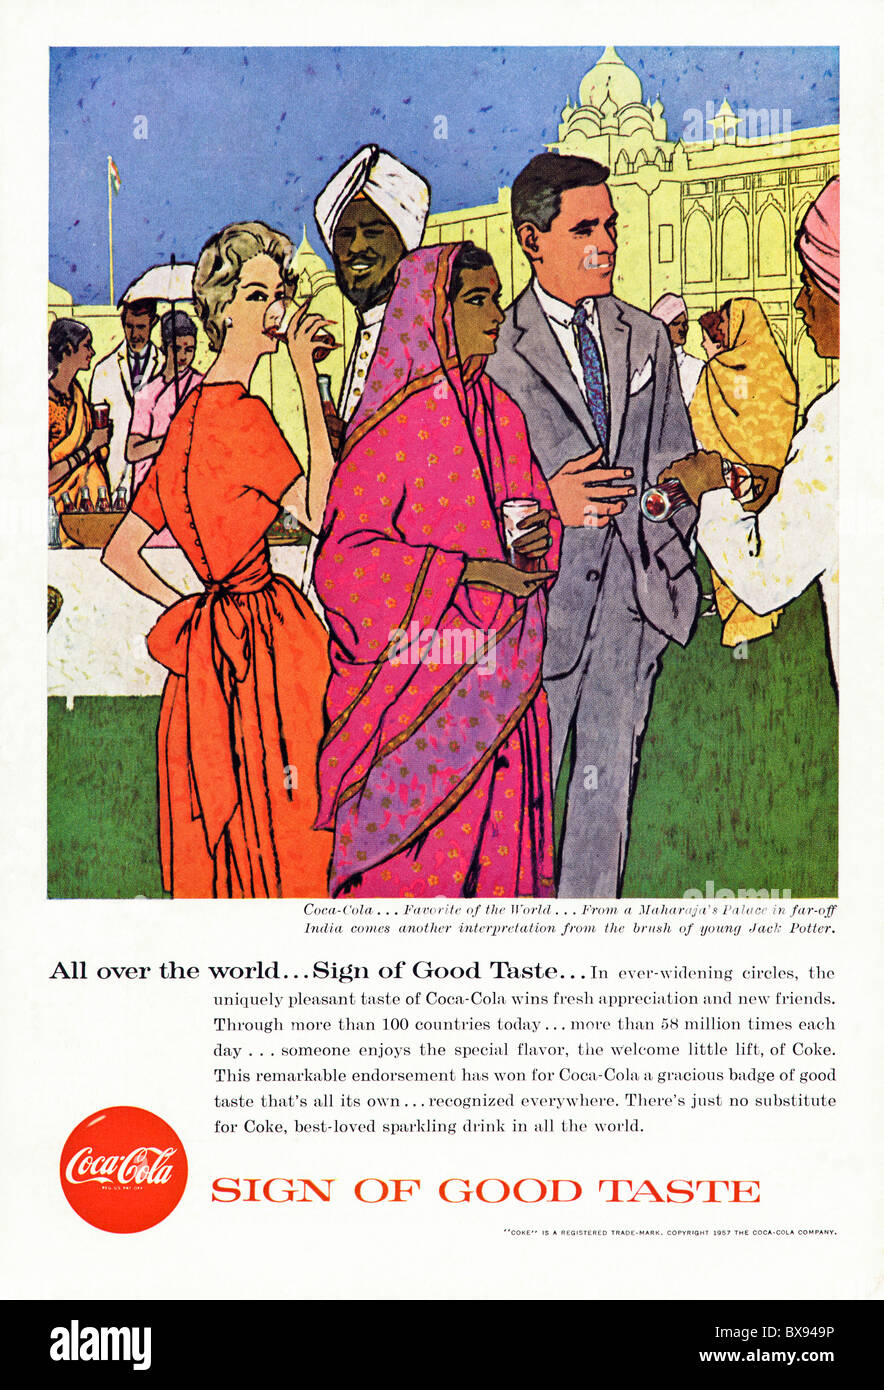 Classic Coca Cola colour advert featuring painting of India by artist Jack Potter in American magazine circa 1957 - Stock Image